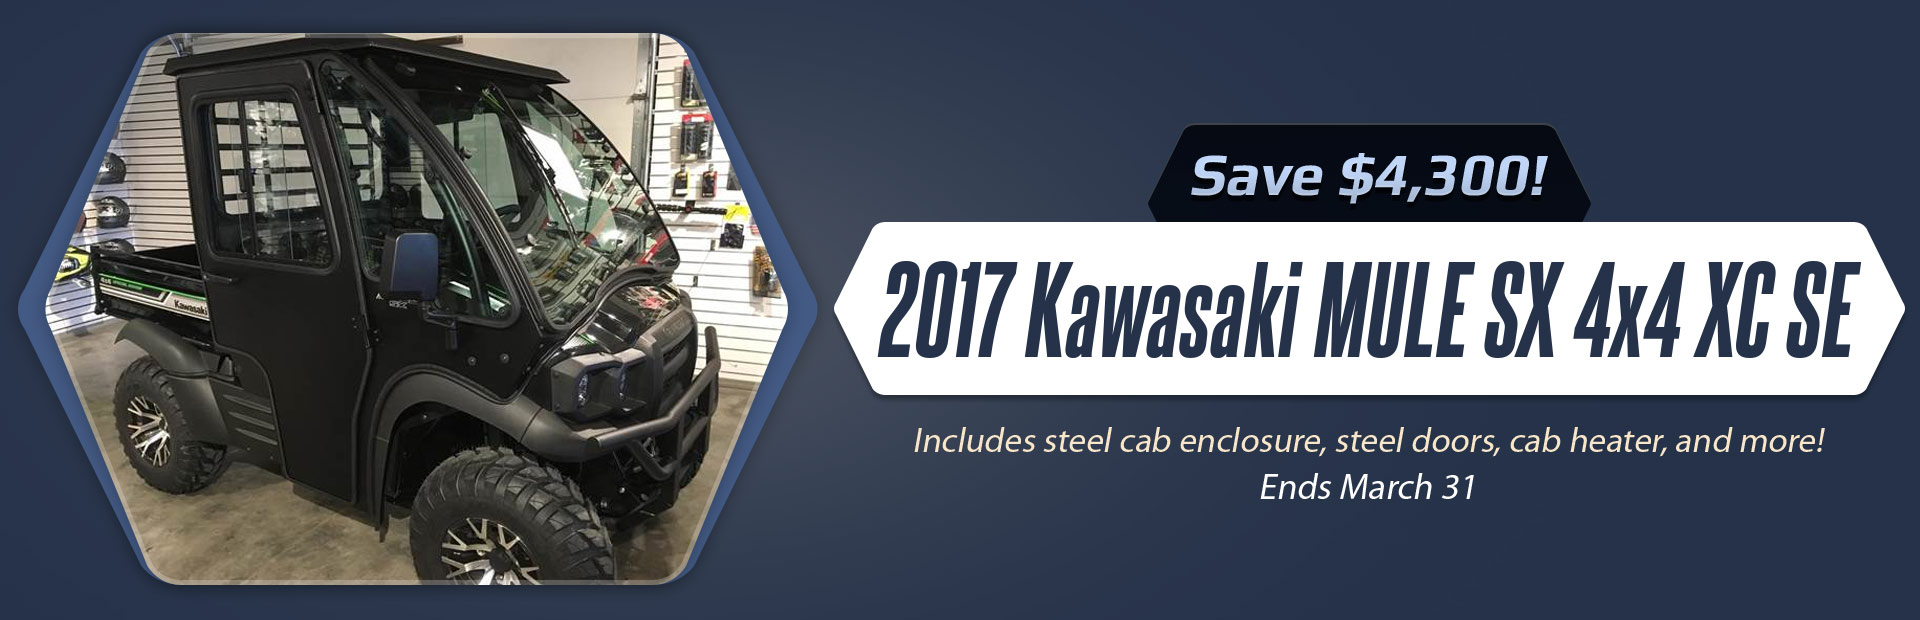 Save $4,300 on the 2017 Kawasaki MULE SX 4x4 XC SE!